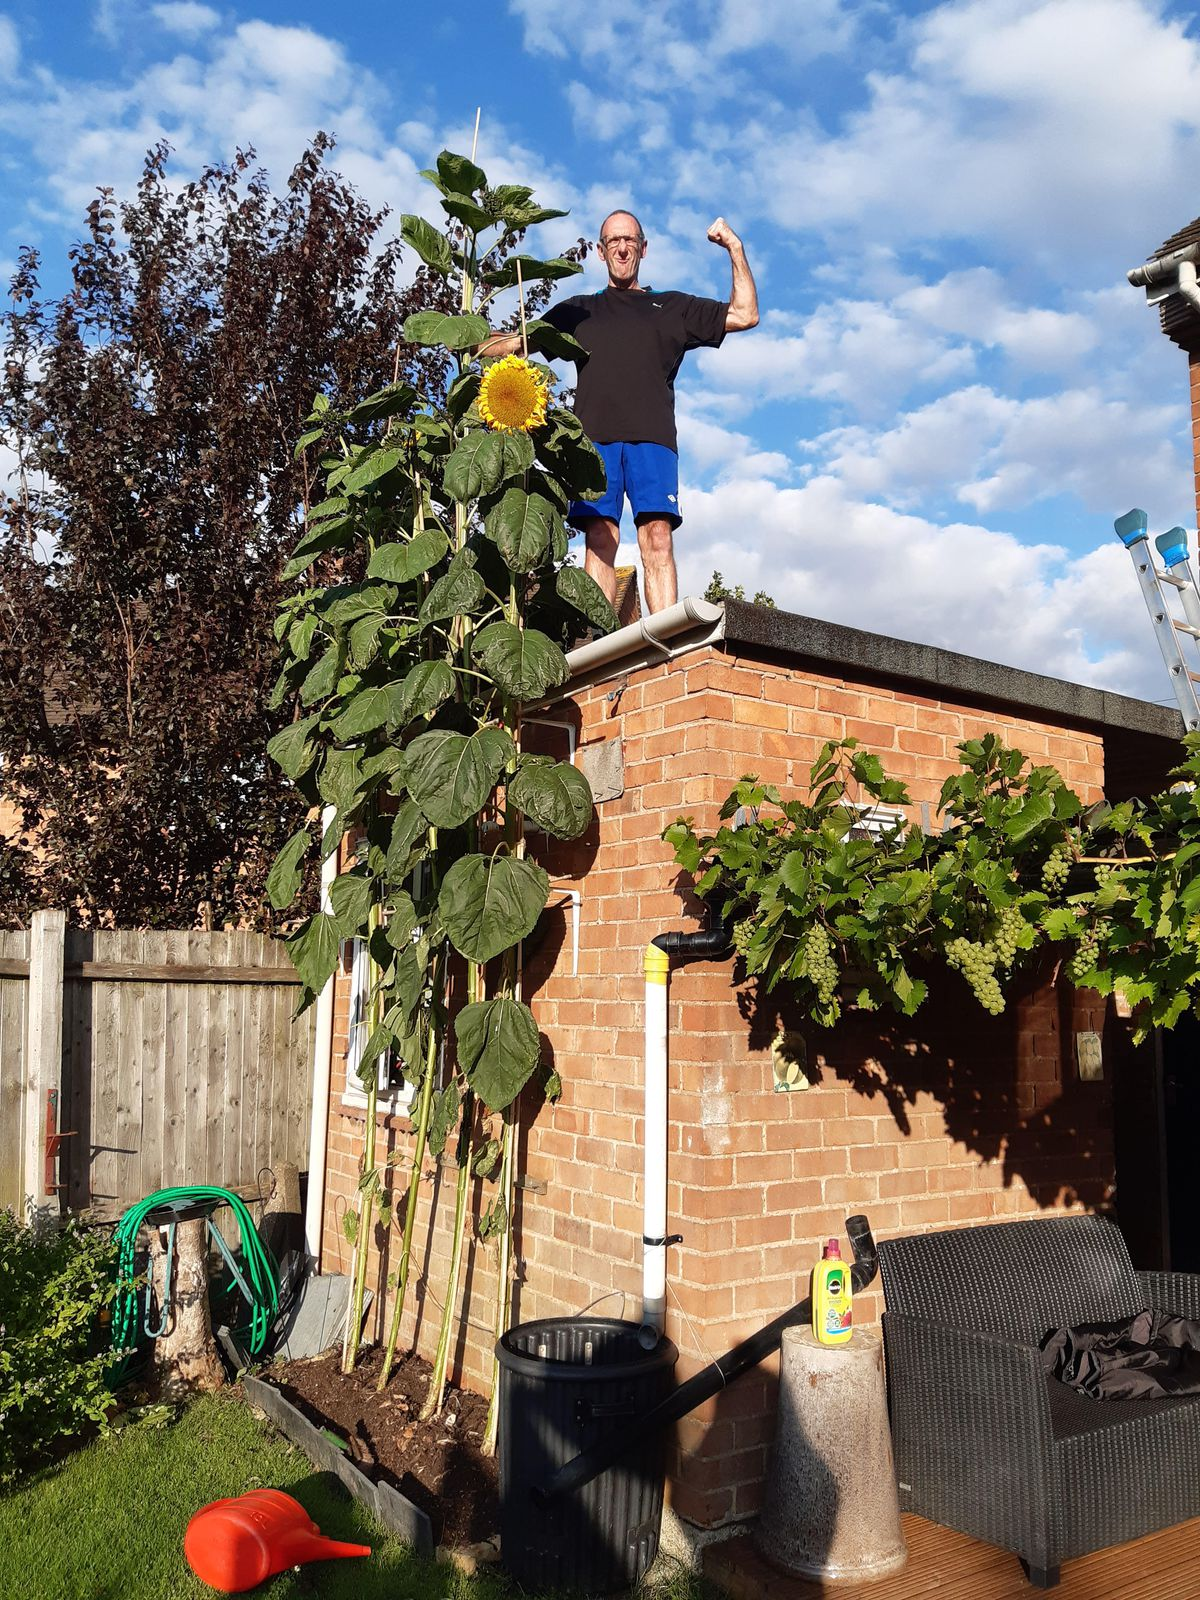 Bryan with his 14 feet tall Sunflower